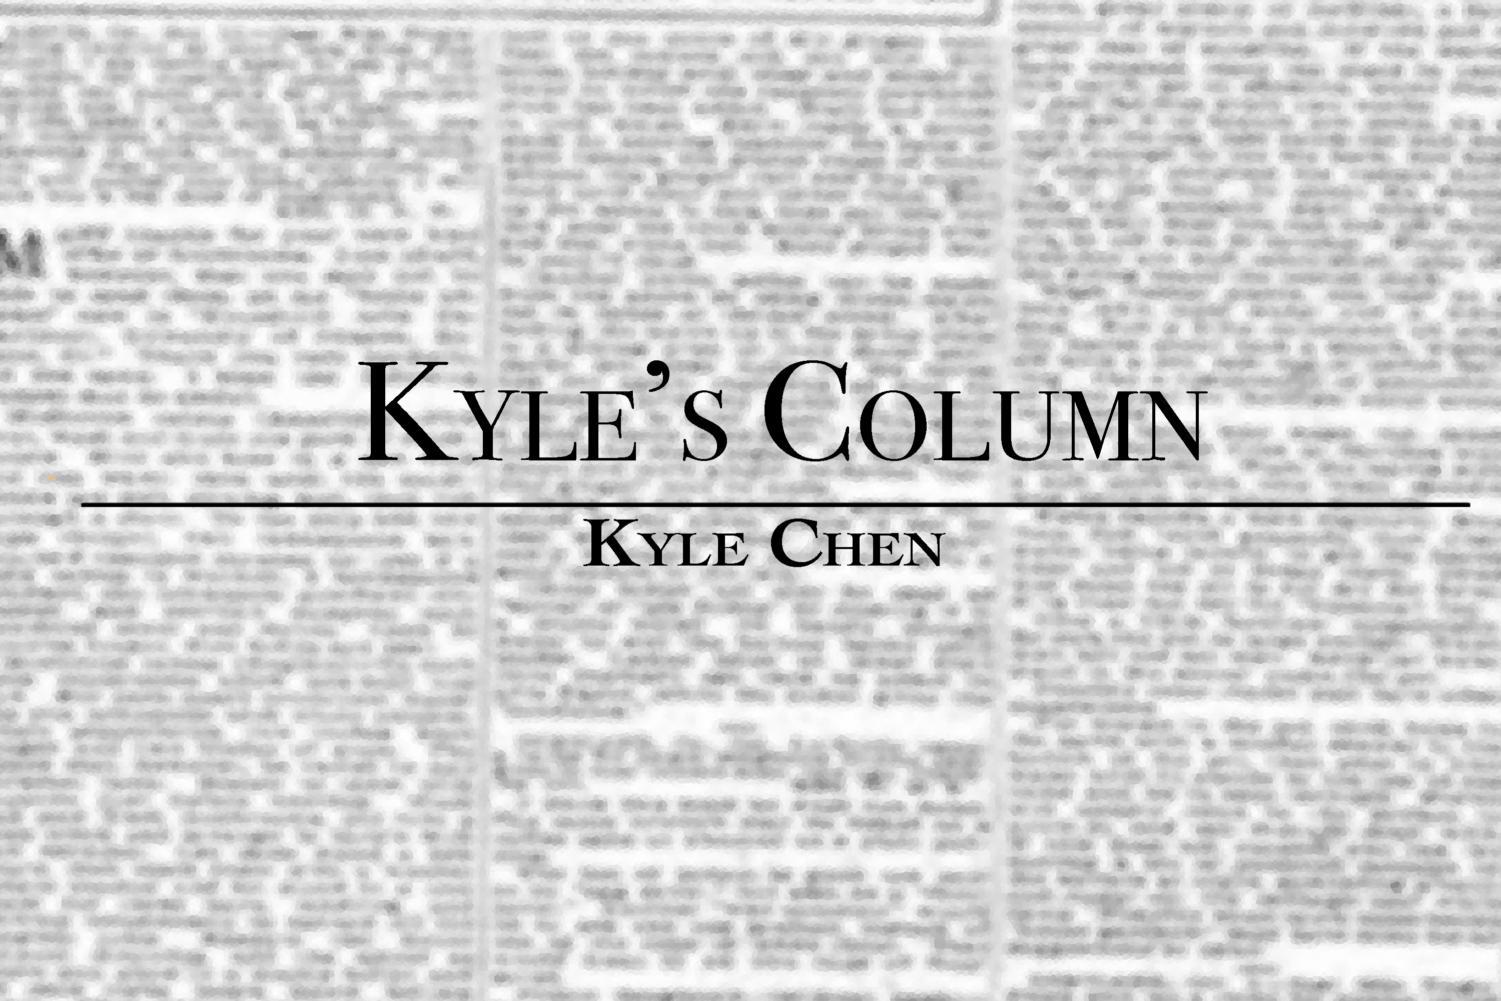 In the latest installment of Kyle's Column, Opinions Editor Kyle Chen begins